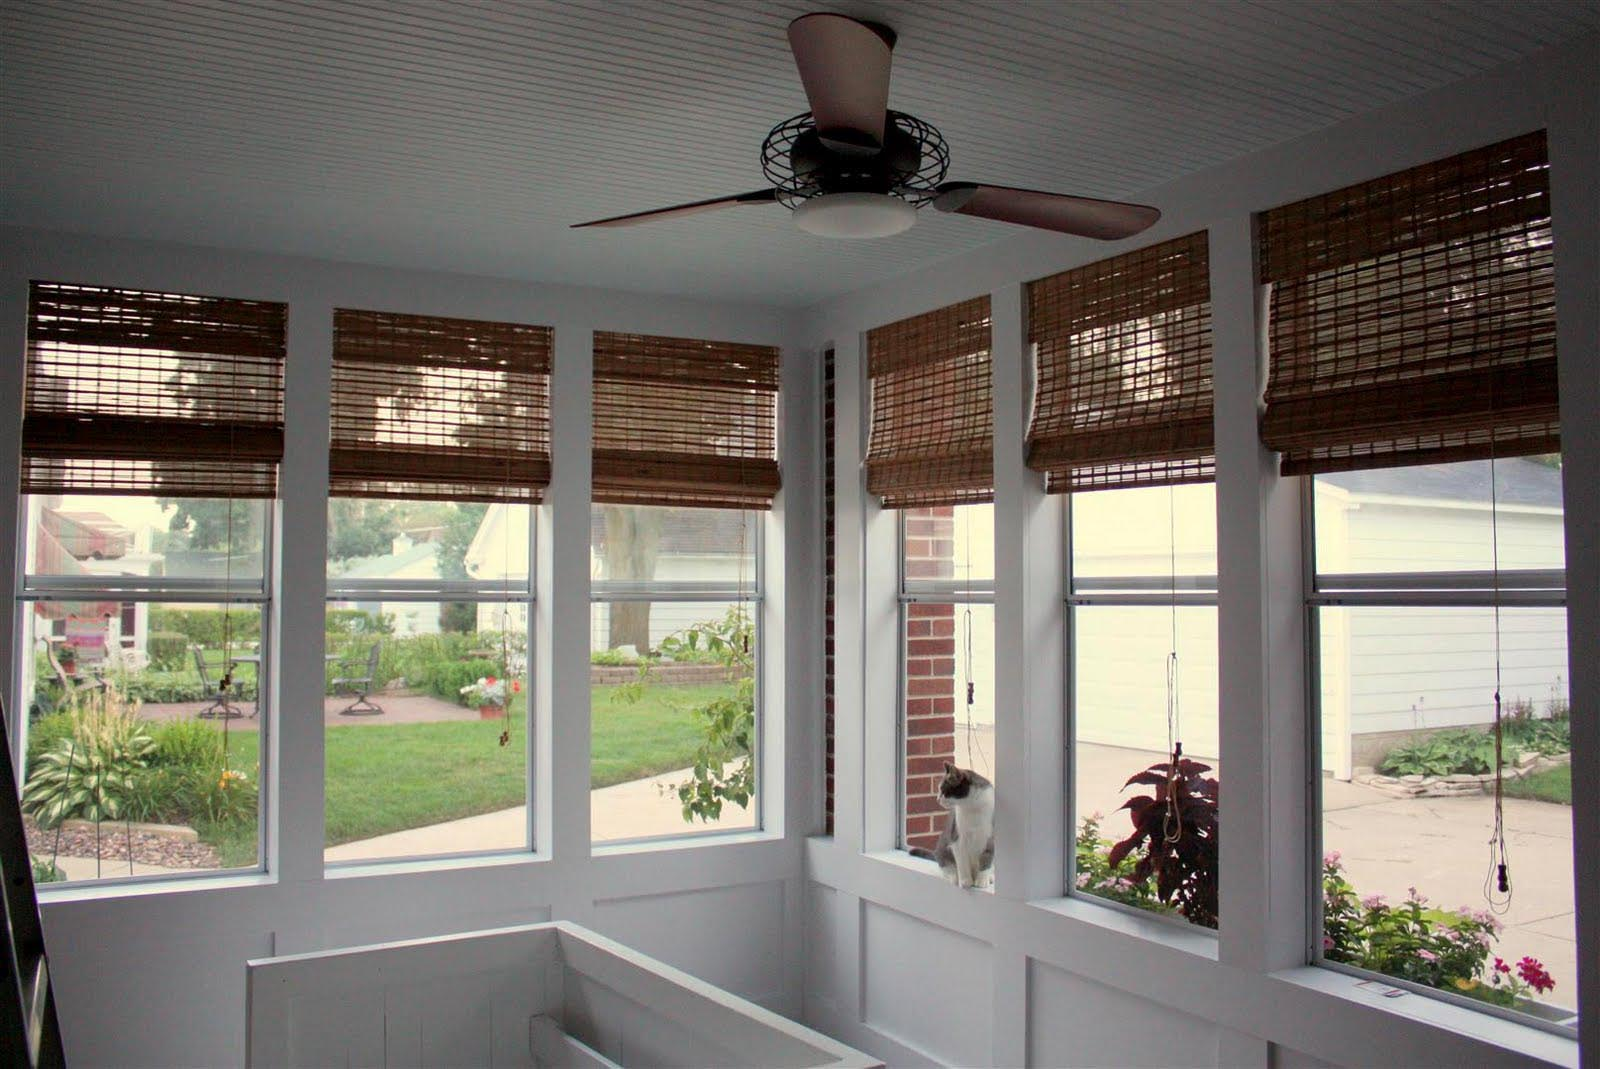 Outdoor Bamboo Shades for Screened Porch